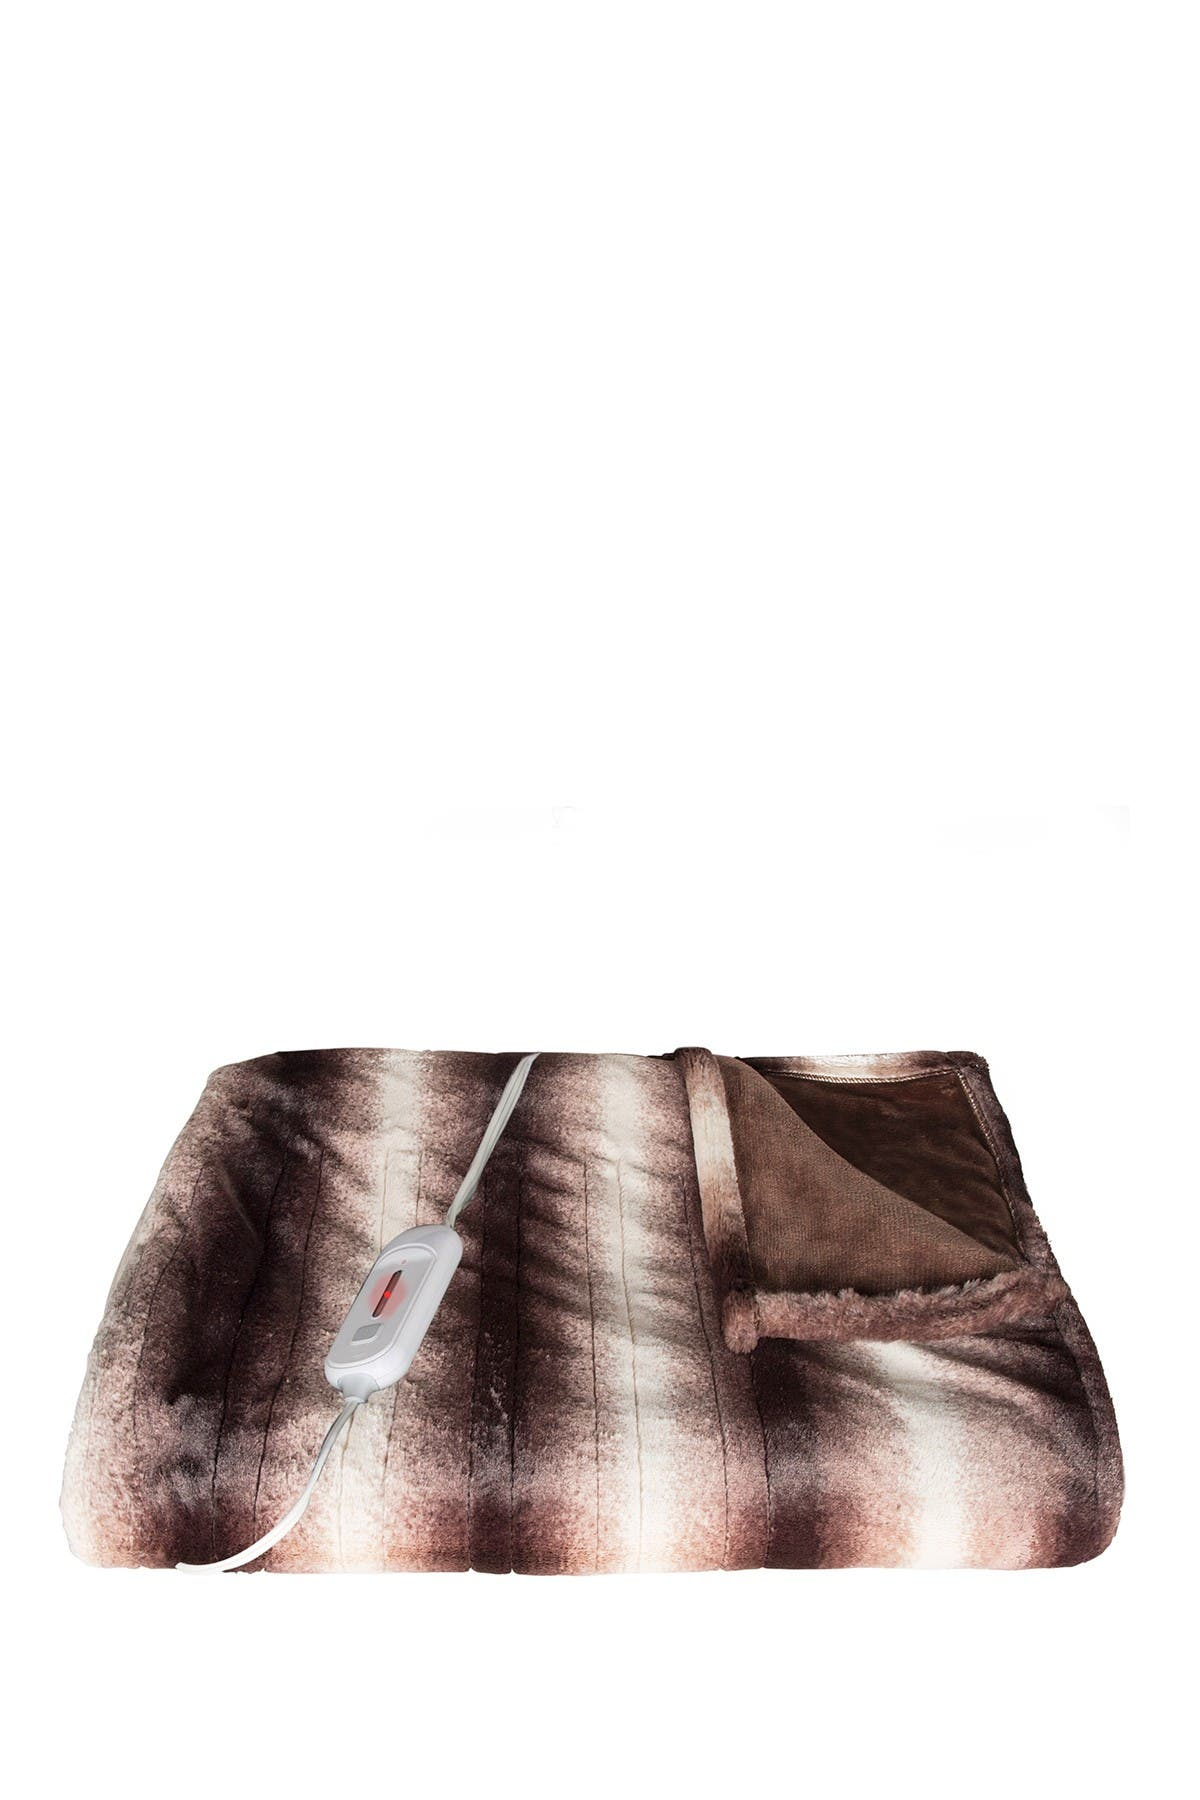 "Image of LUXE Brown/White Faux Fur Heated Throw Blanket - 50"" x 60"""